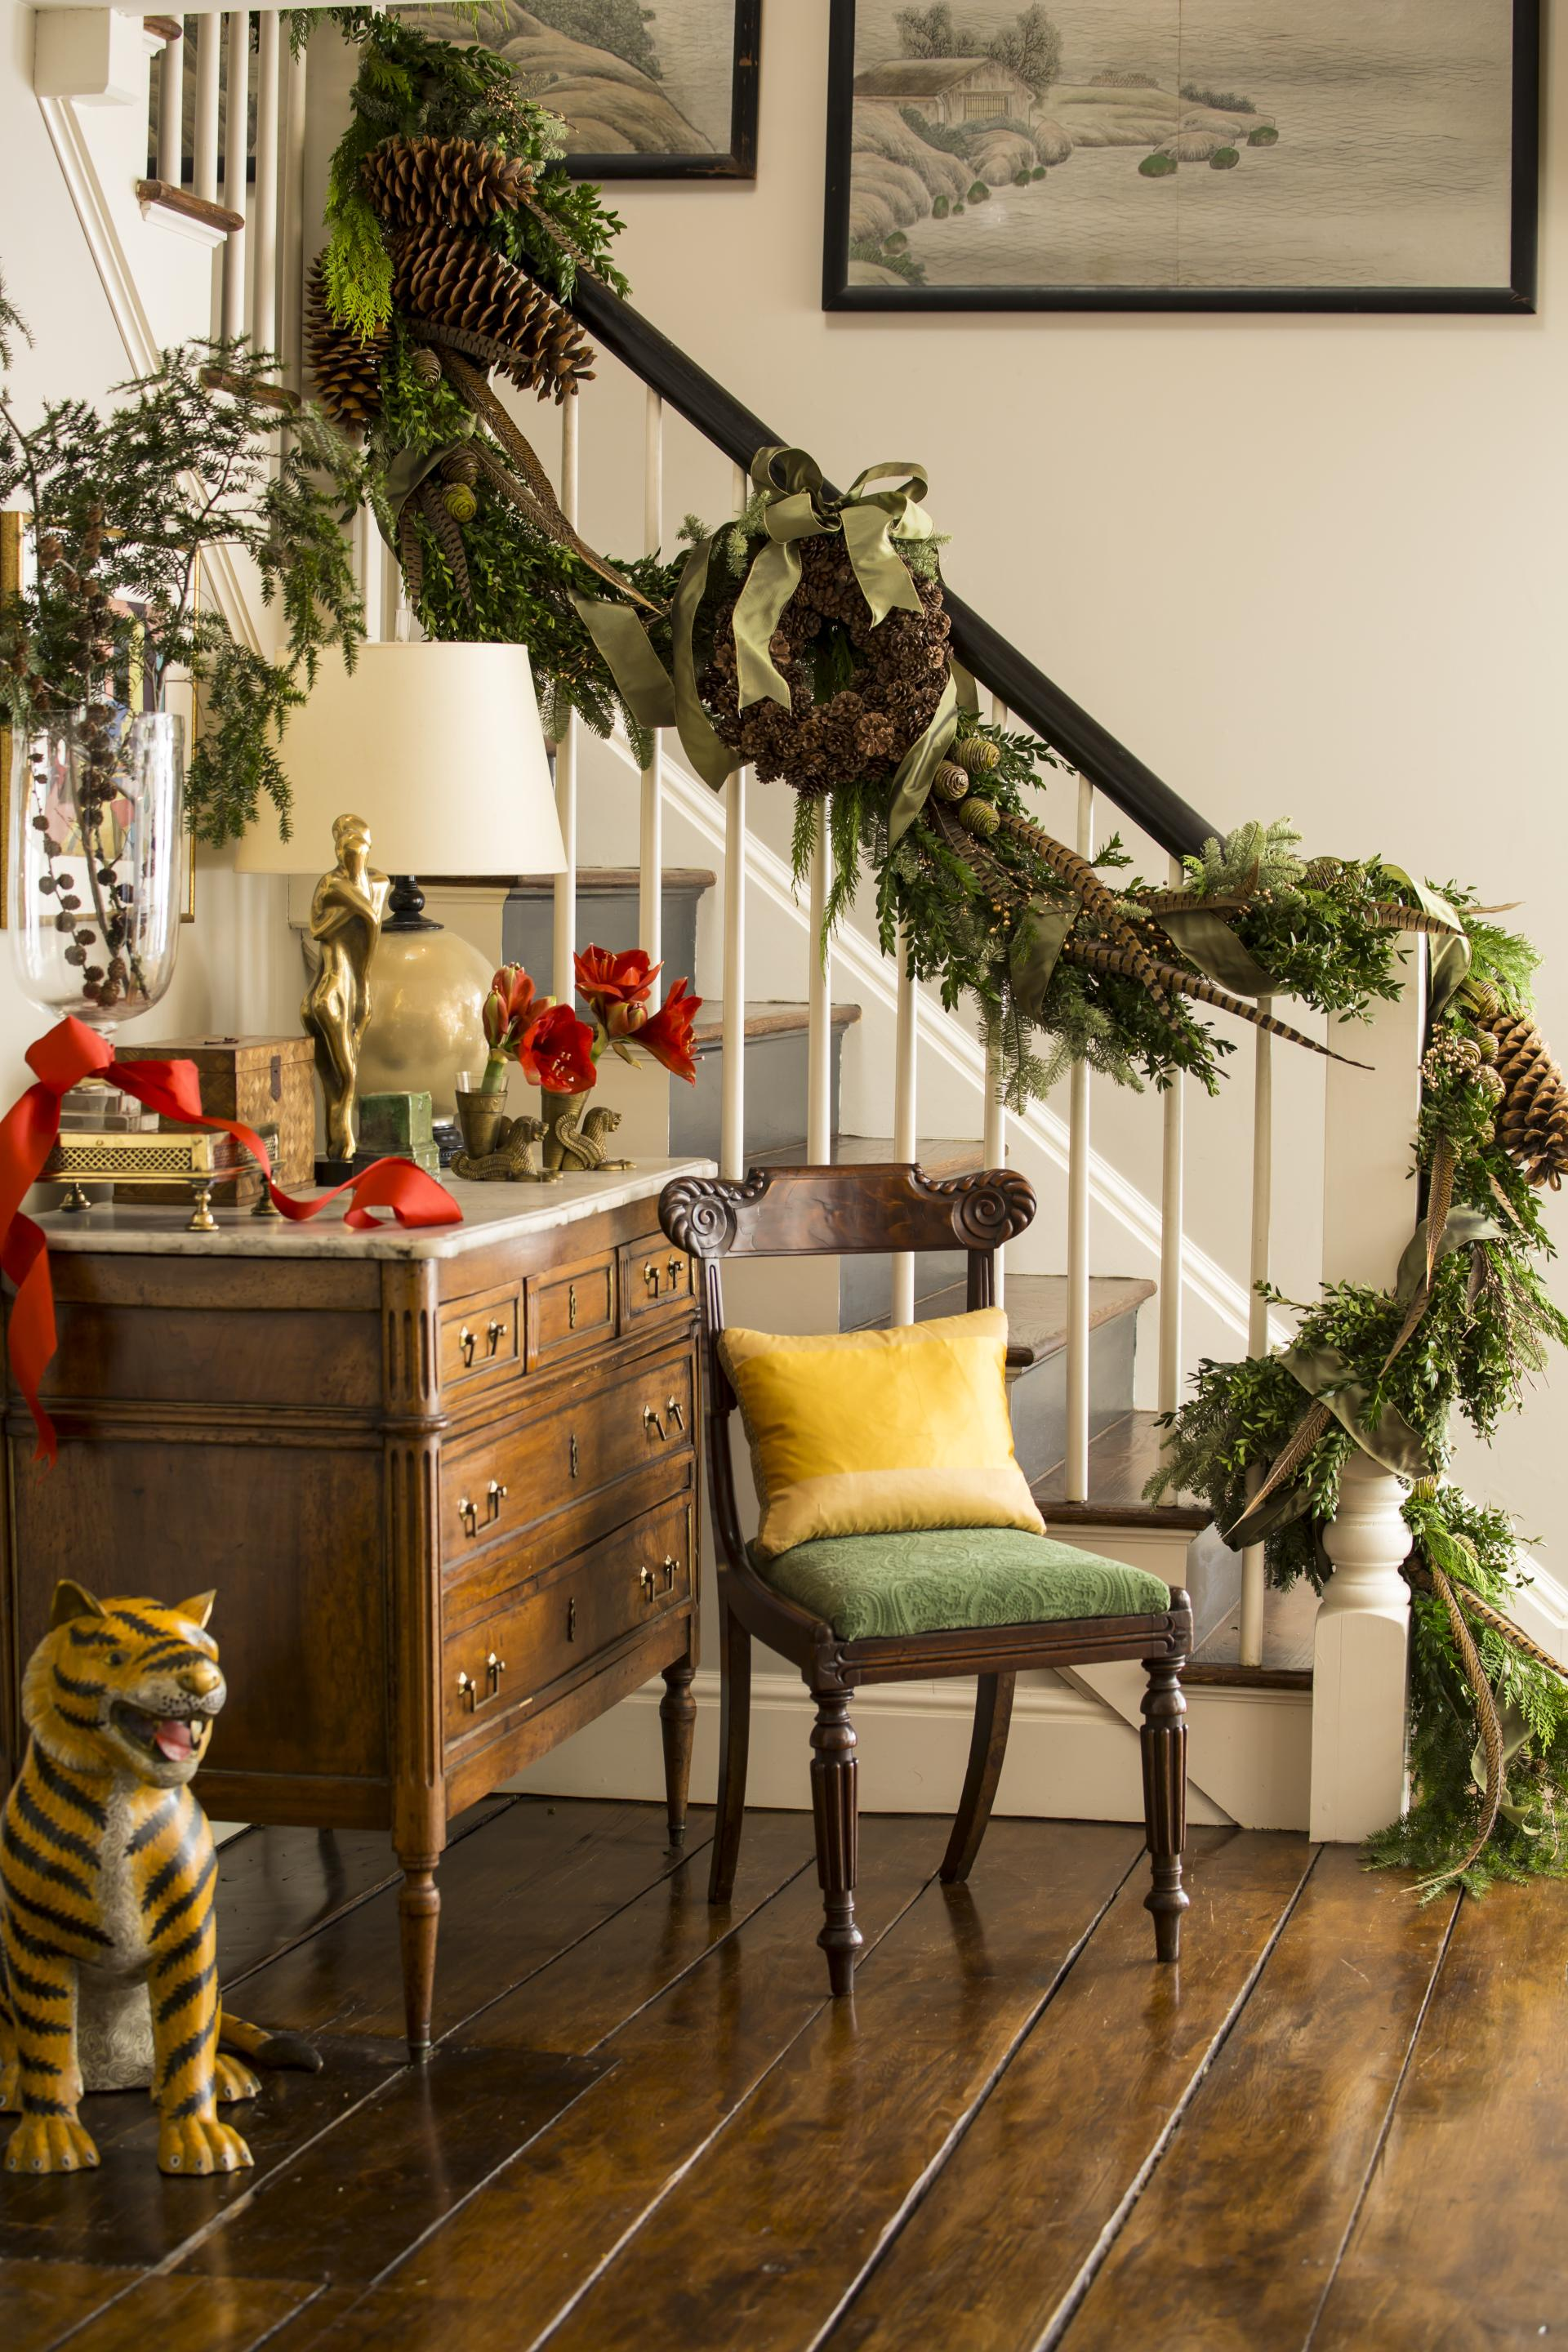 fresh greenery entwined with pheasant feathers pine cones and green ribbon adorn the banister of this stairway you can find the festive red with accents - Christmas Decorations For Stairs Banisters